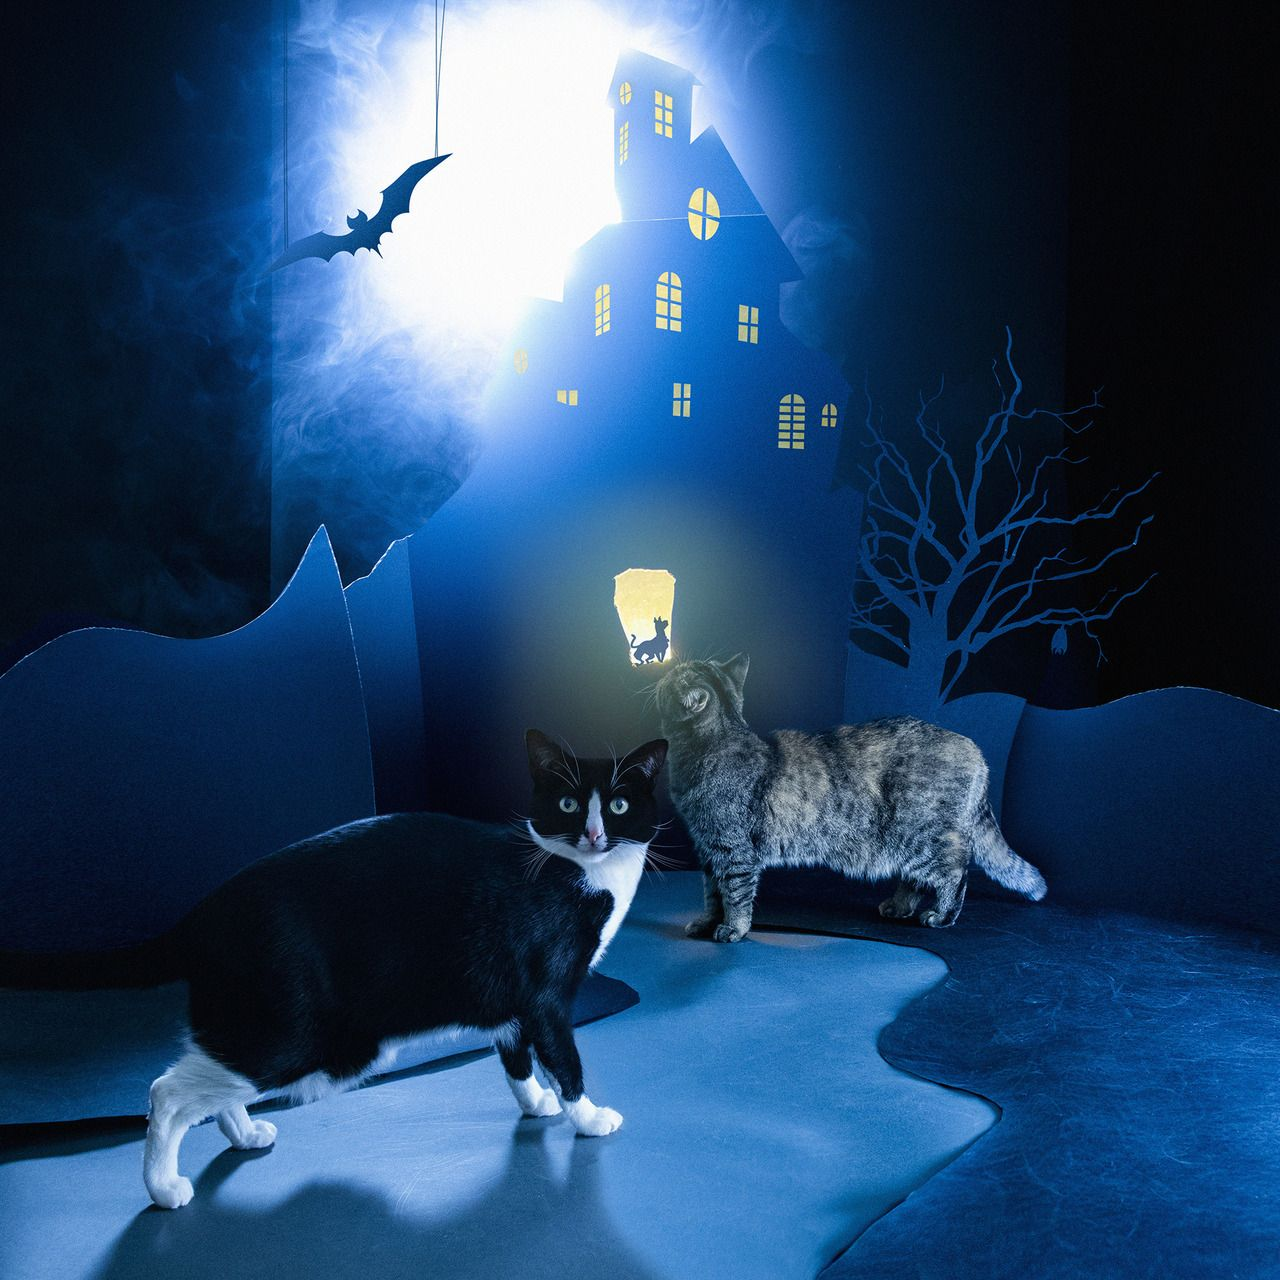 Don't be a scaredycat! 👻 Cats, Character, Fictional